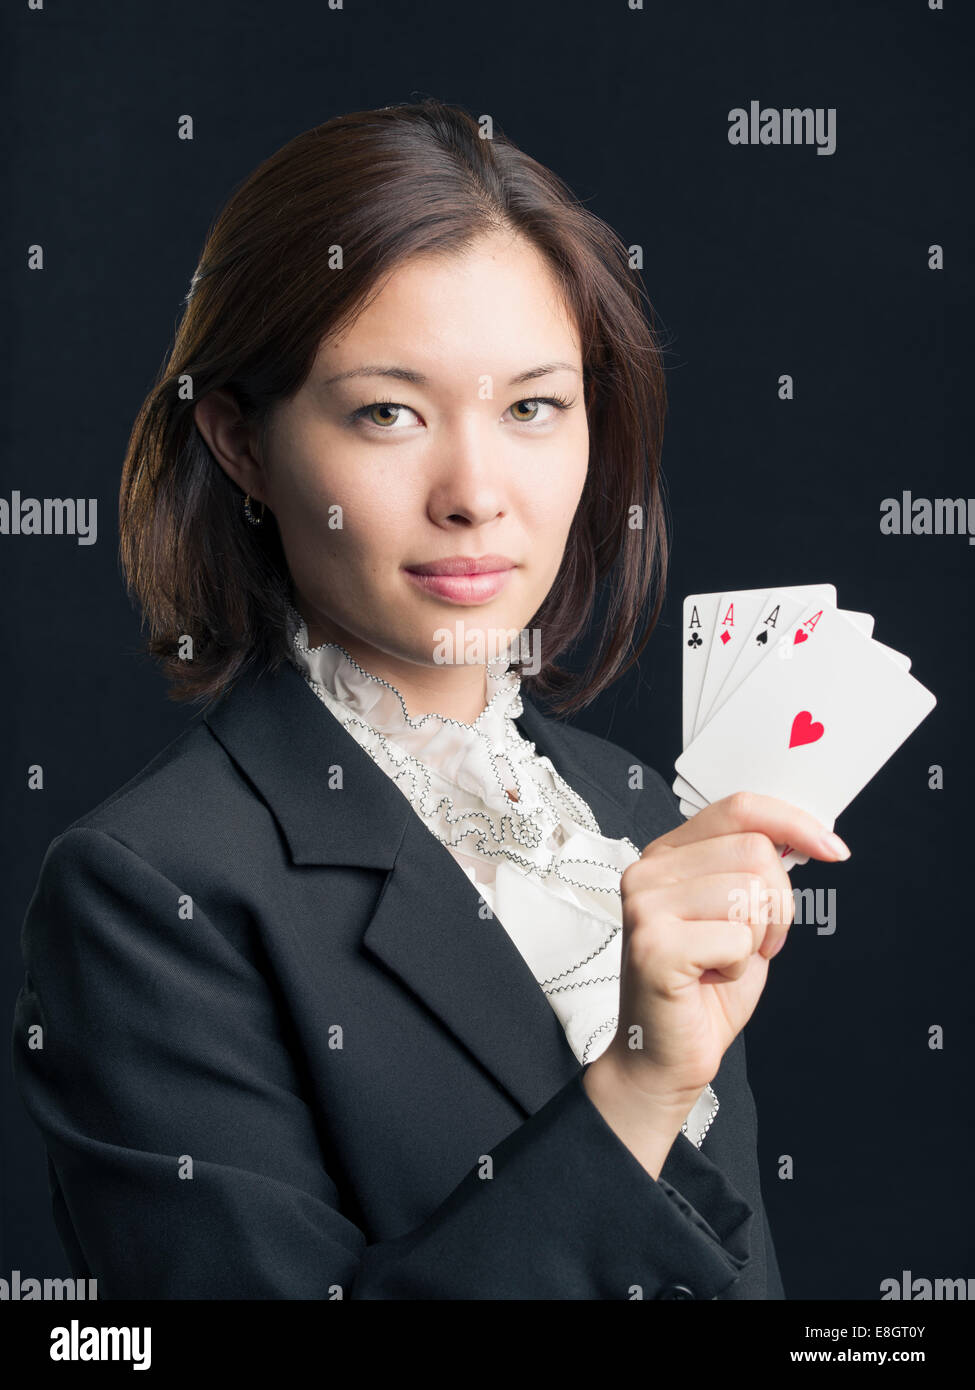 Professional Gambler  / Poker Player - Stock Image